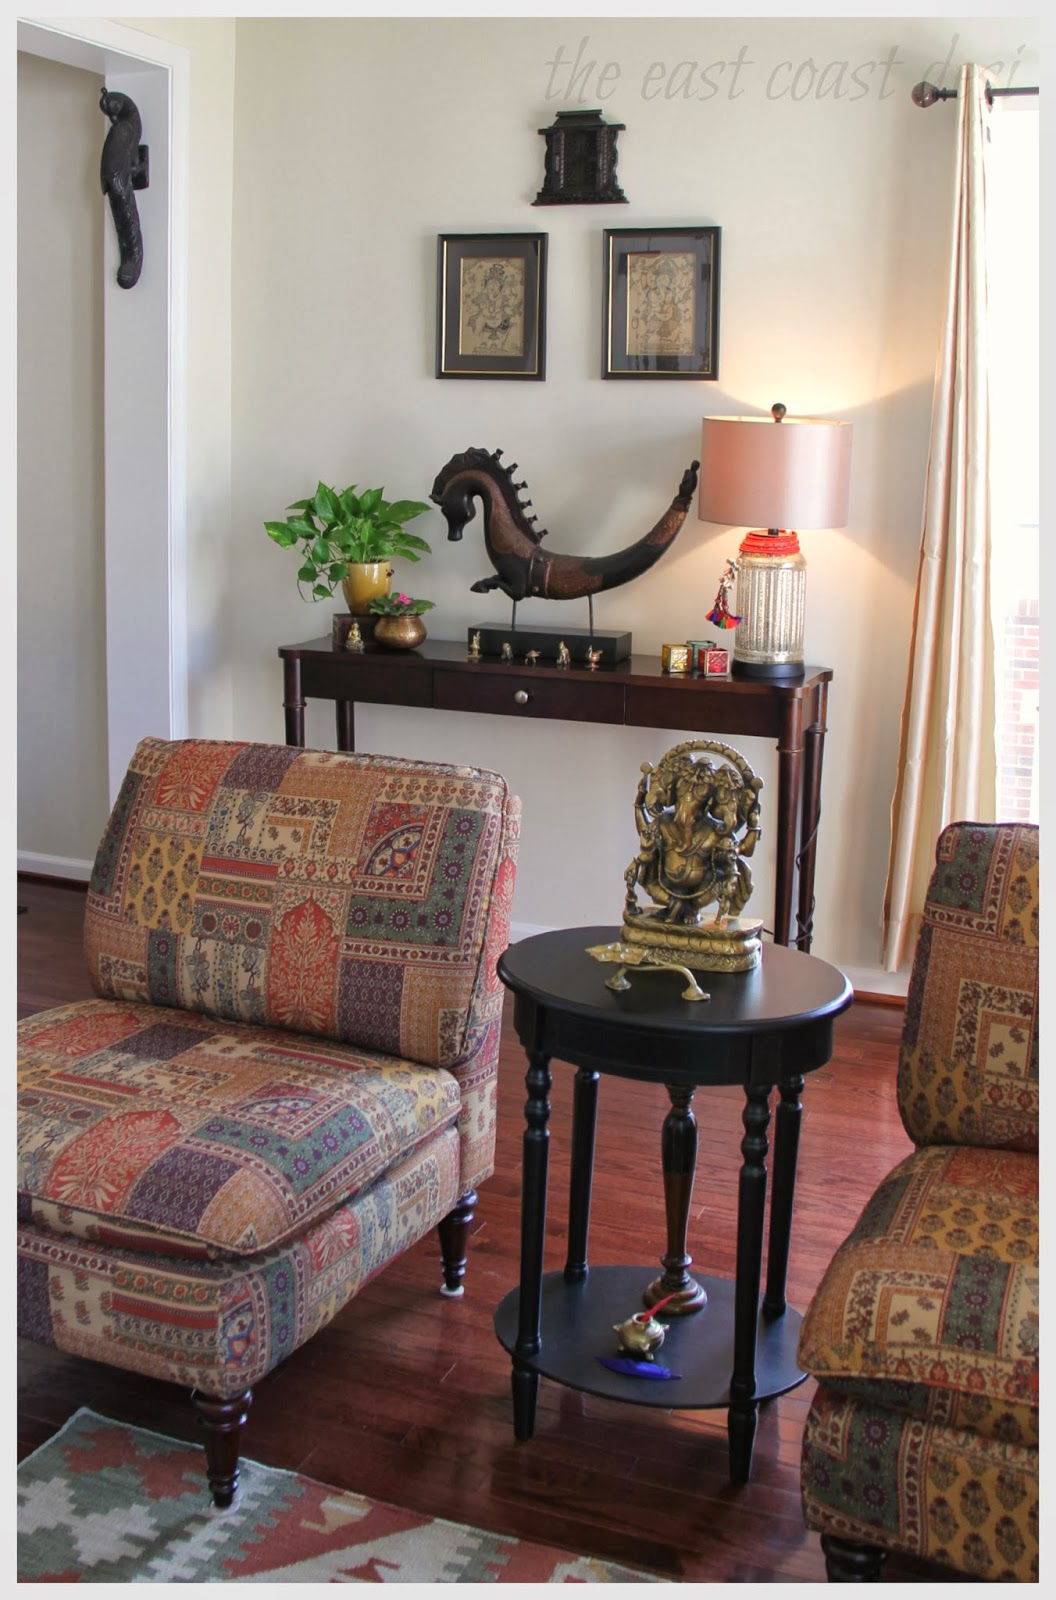 The east coast desi my living room a reflection of india for Online drawing room